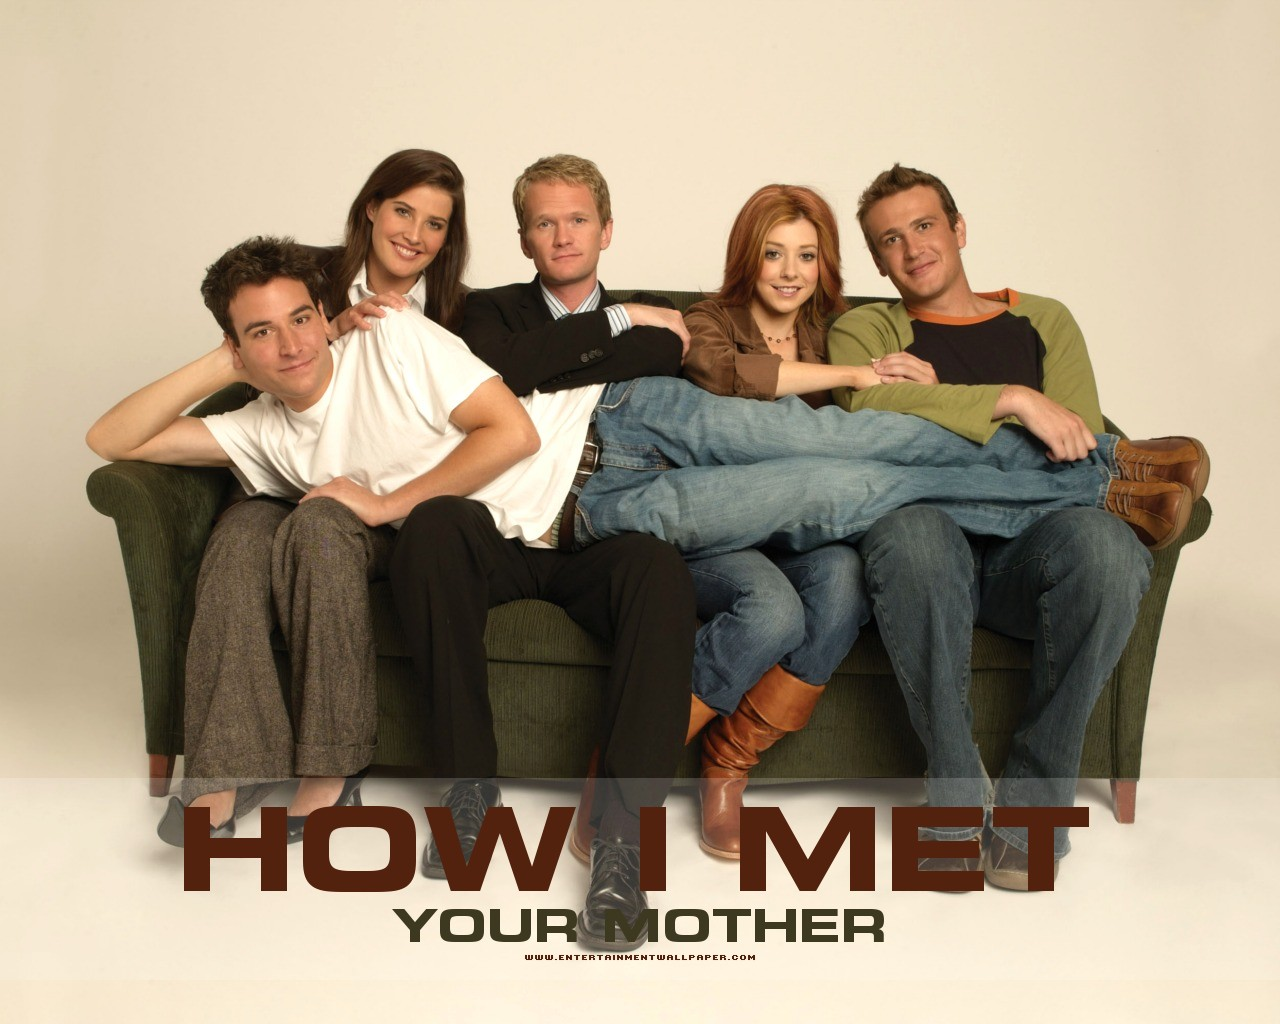 how i met ur mom Download how i met your mother season 9 complete episodes download for free no registration needed all episodes of how i met your mother season 9.